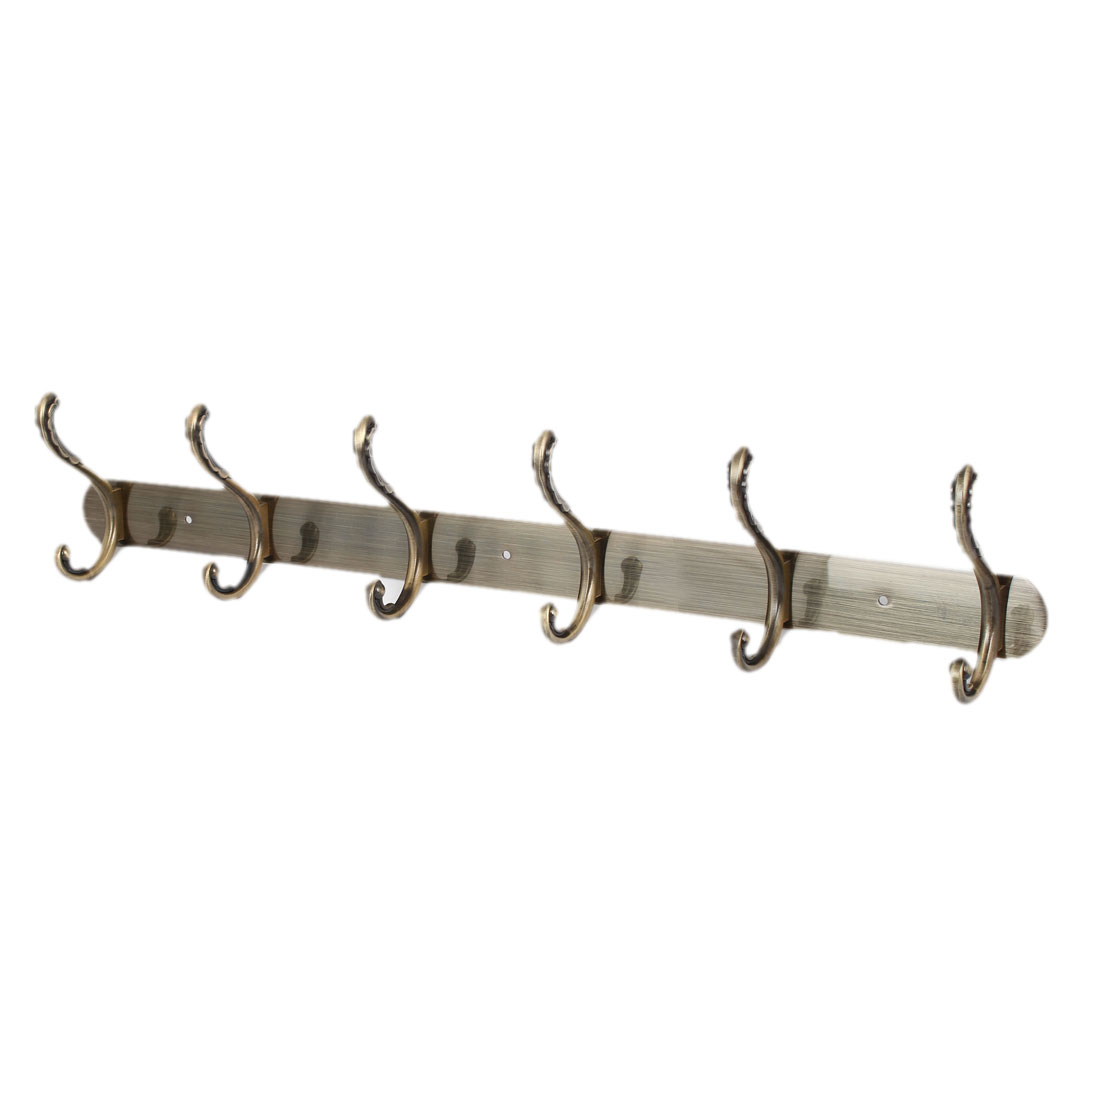 Coat Towel Metal Rail Bar 6 Double Hook Wall Hanger Bronze Tone 550 x 40 x 2mm